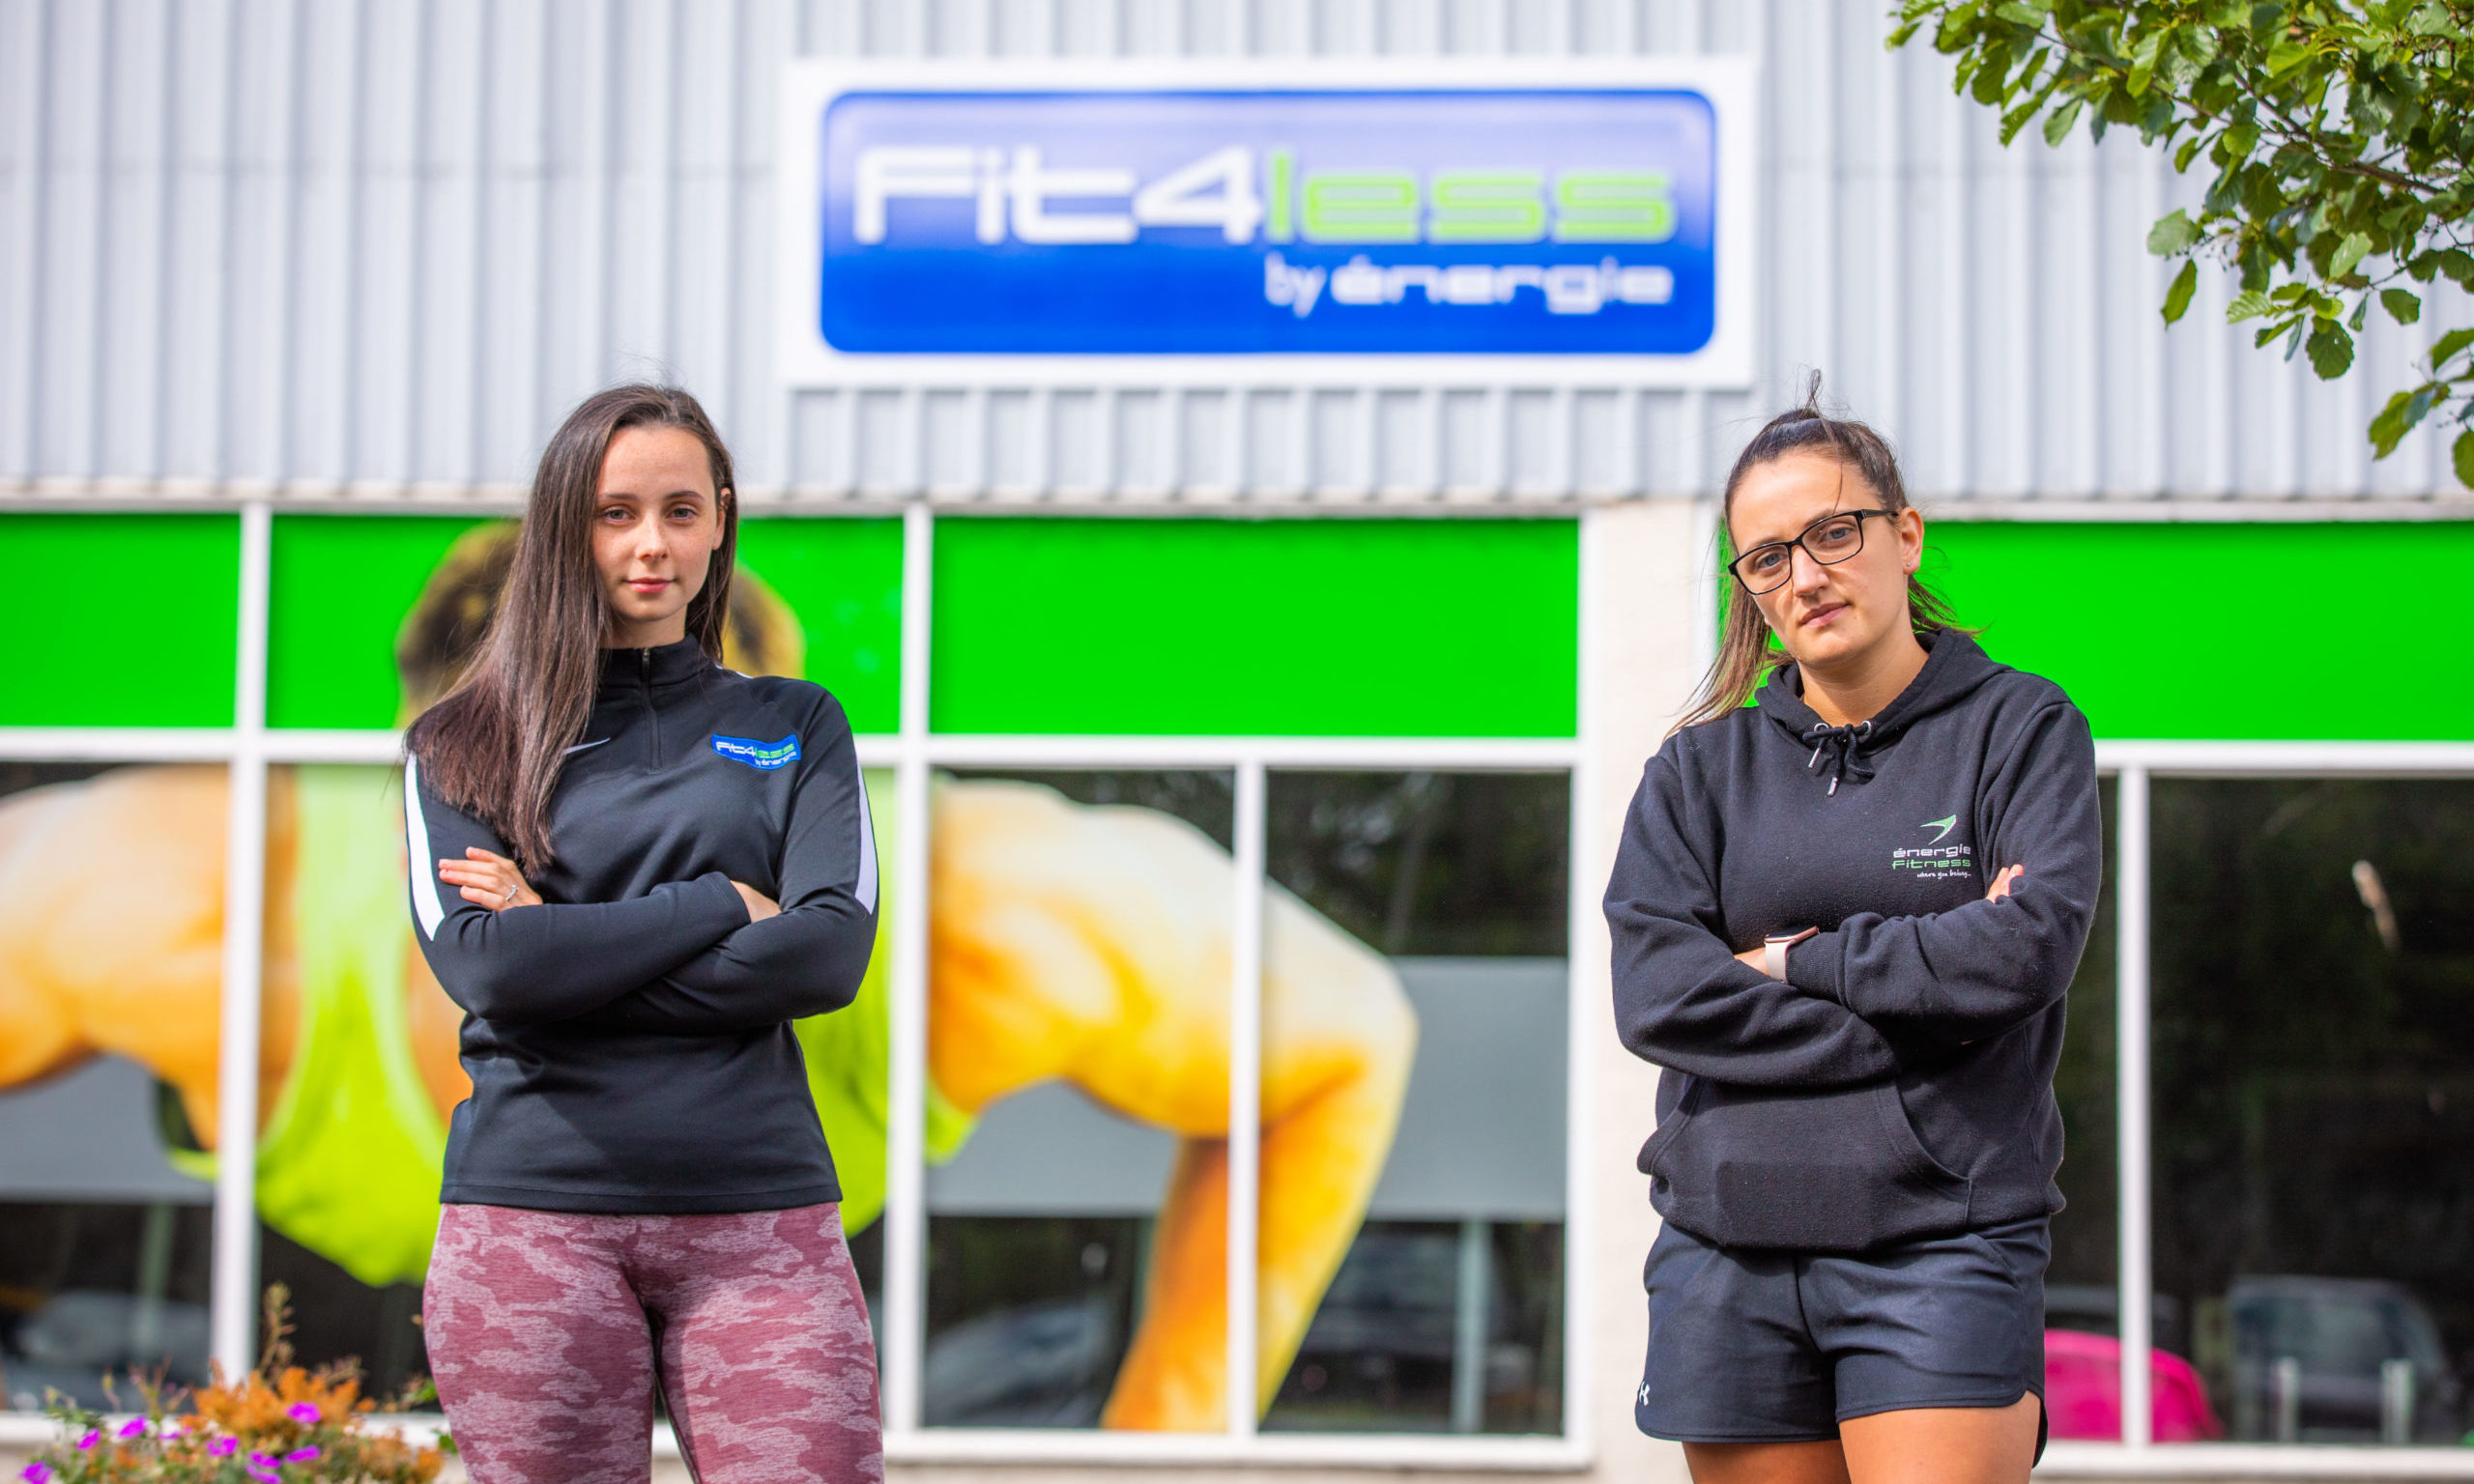 Fit4less staff members Megan Ely and Claire Crockart are worried about the gyms future.